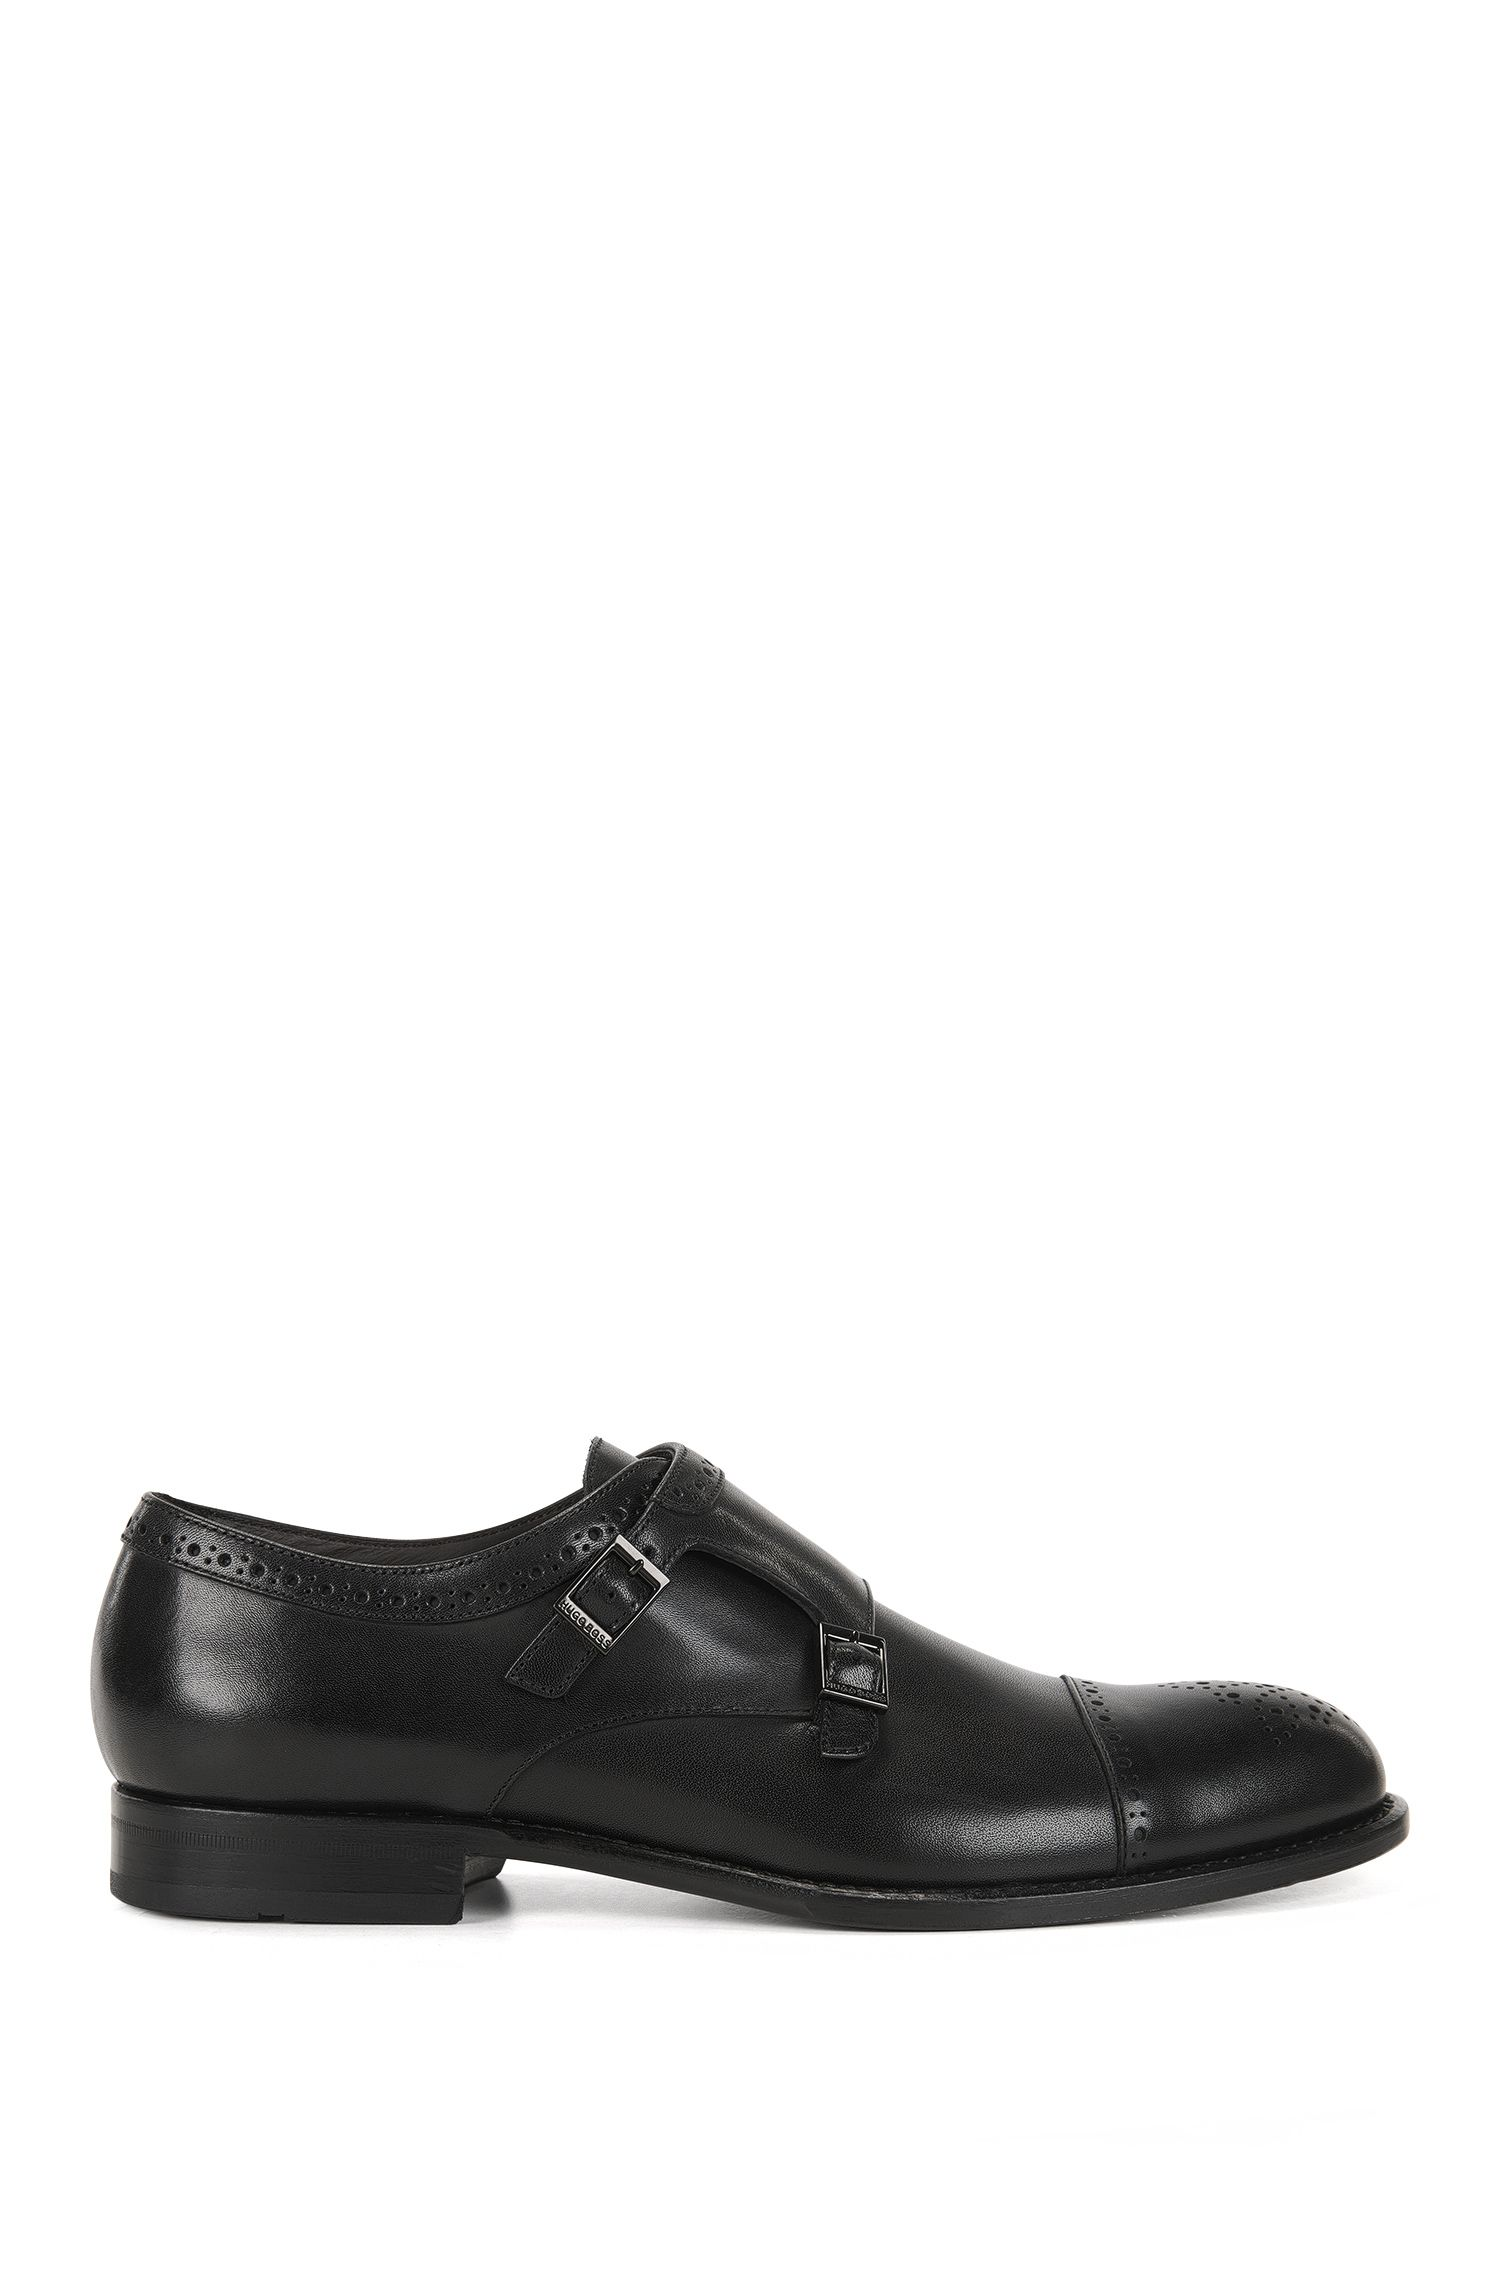 Leather monk shoes with brogue details